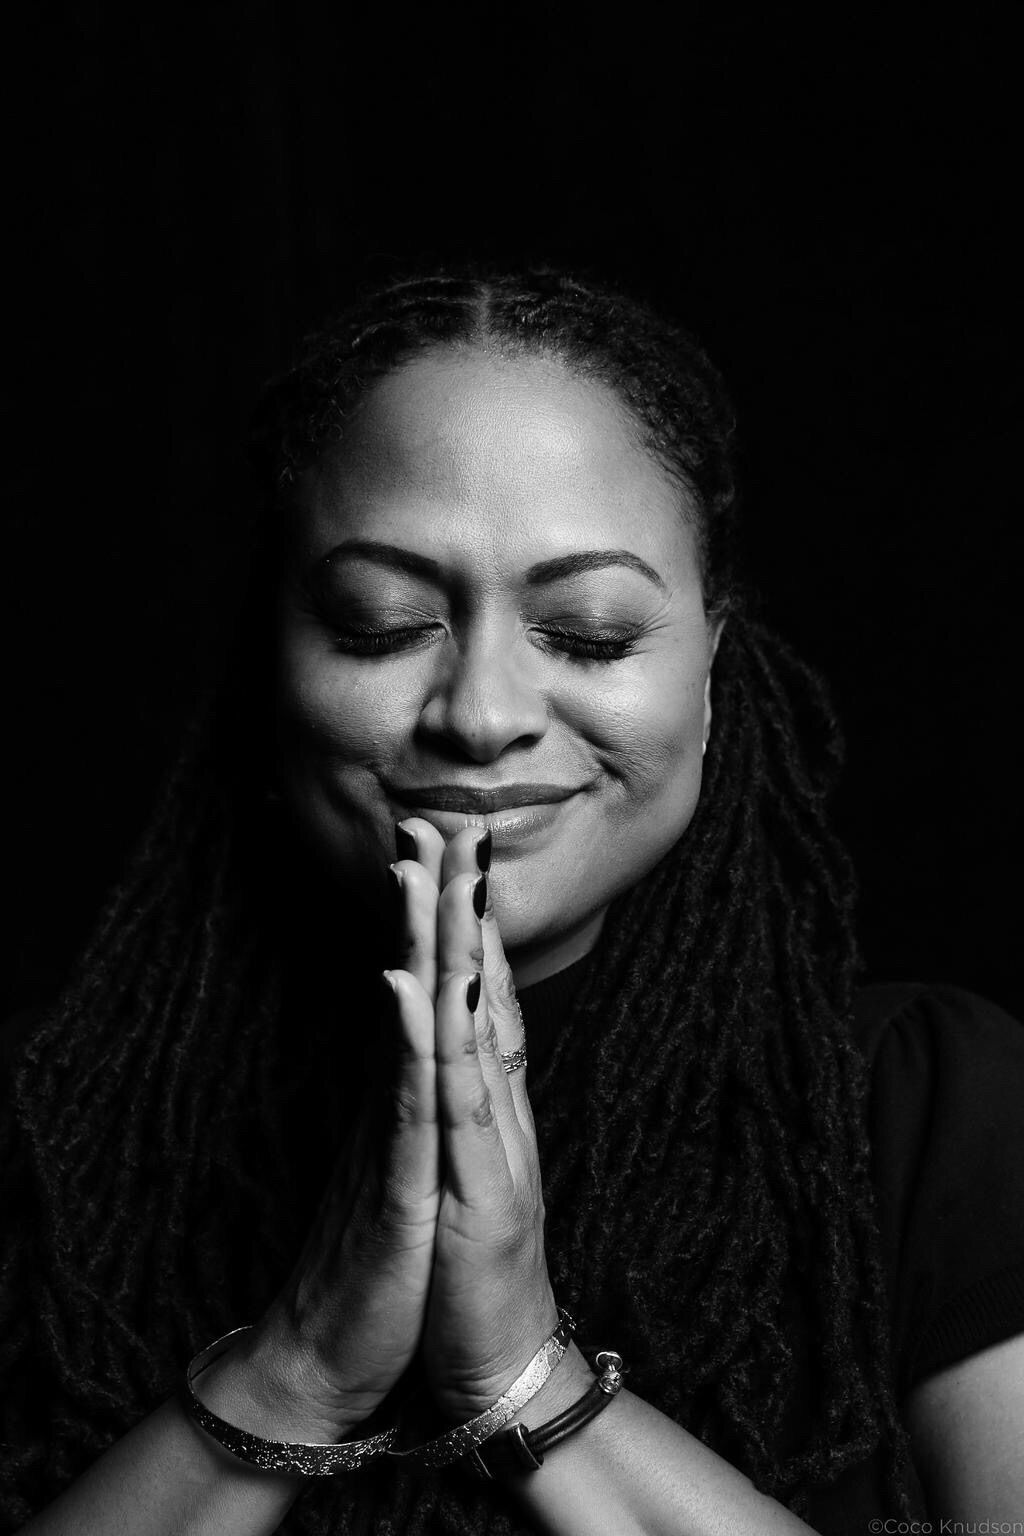 Ava duvernay people and portraits in black and white photography